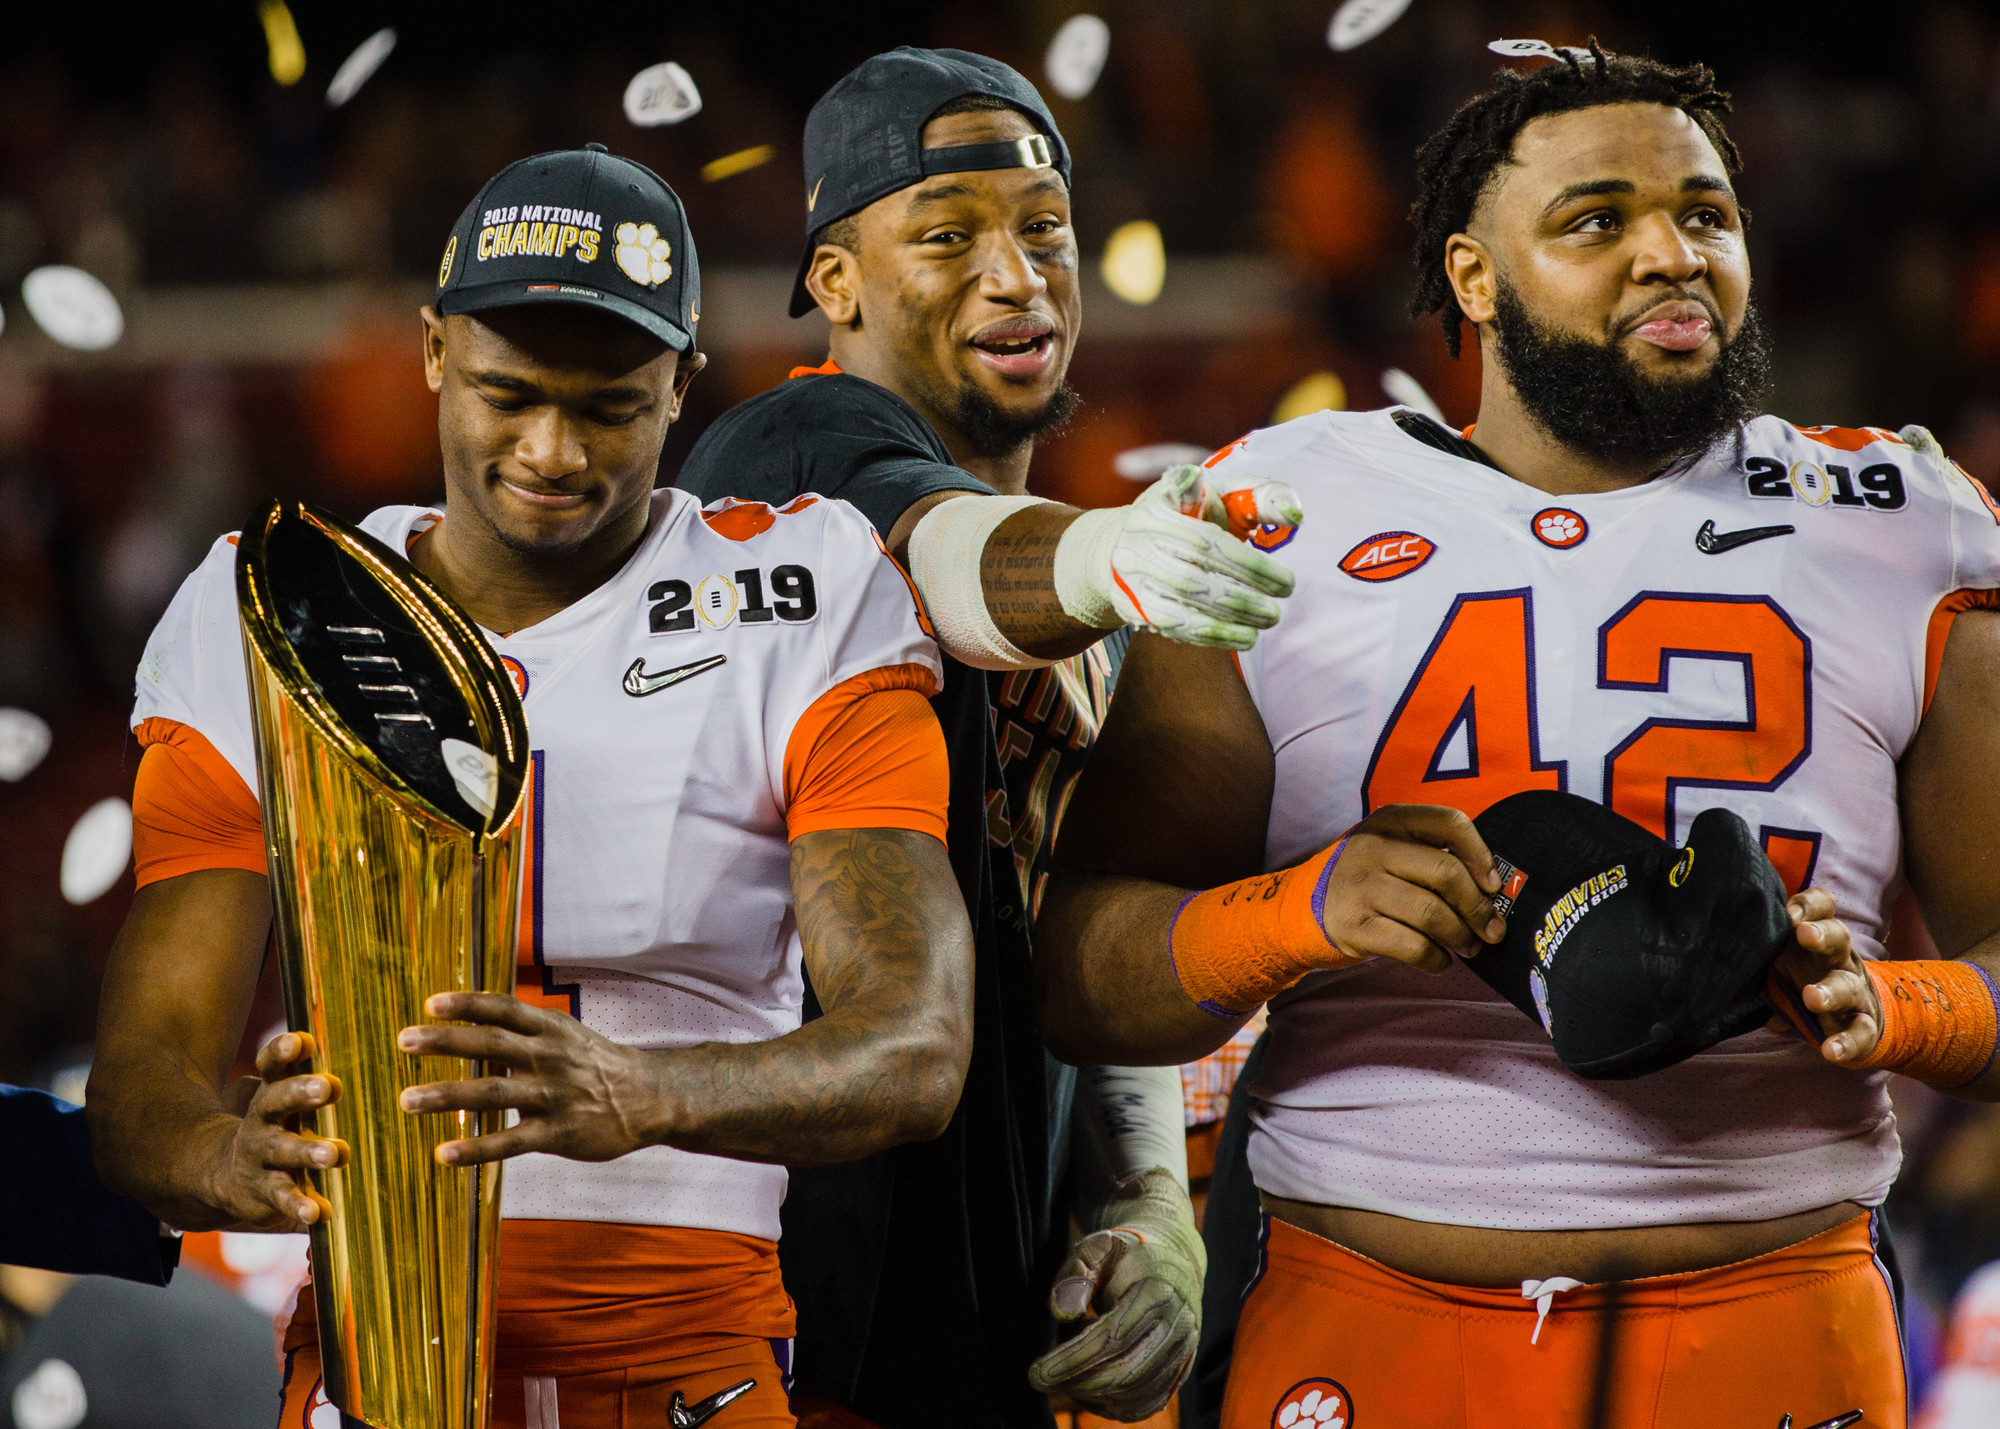 Clemson defensive tackle Christian Wilkins, right, takes in the moment after the Tigers routed Alabama to win the 2019 CFP National Championship at Levi's Stadium in Santa Clara, California, on Monday, Jan. 7. Wilkins and the rest of the senior class went 55-4 in their time at Clemson, winning two national championship, both against the Crimson Tide, and four ACC conference titles.